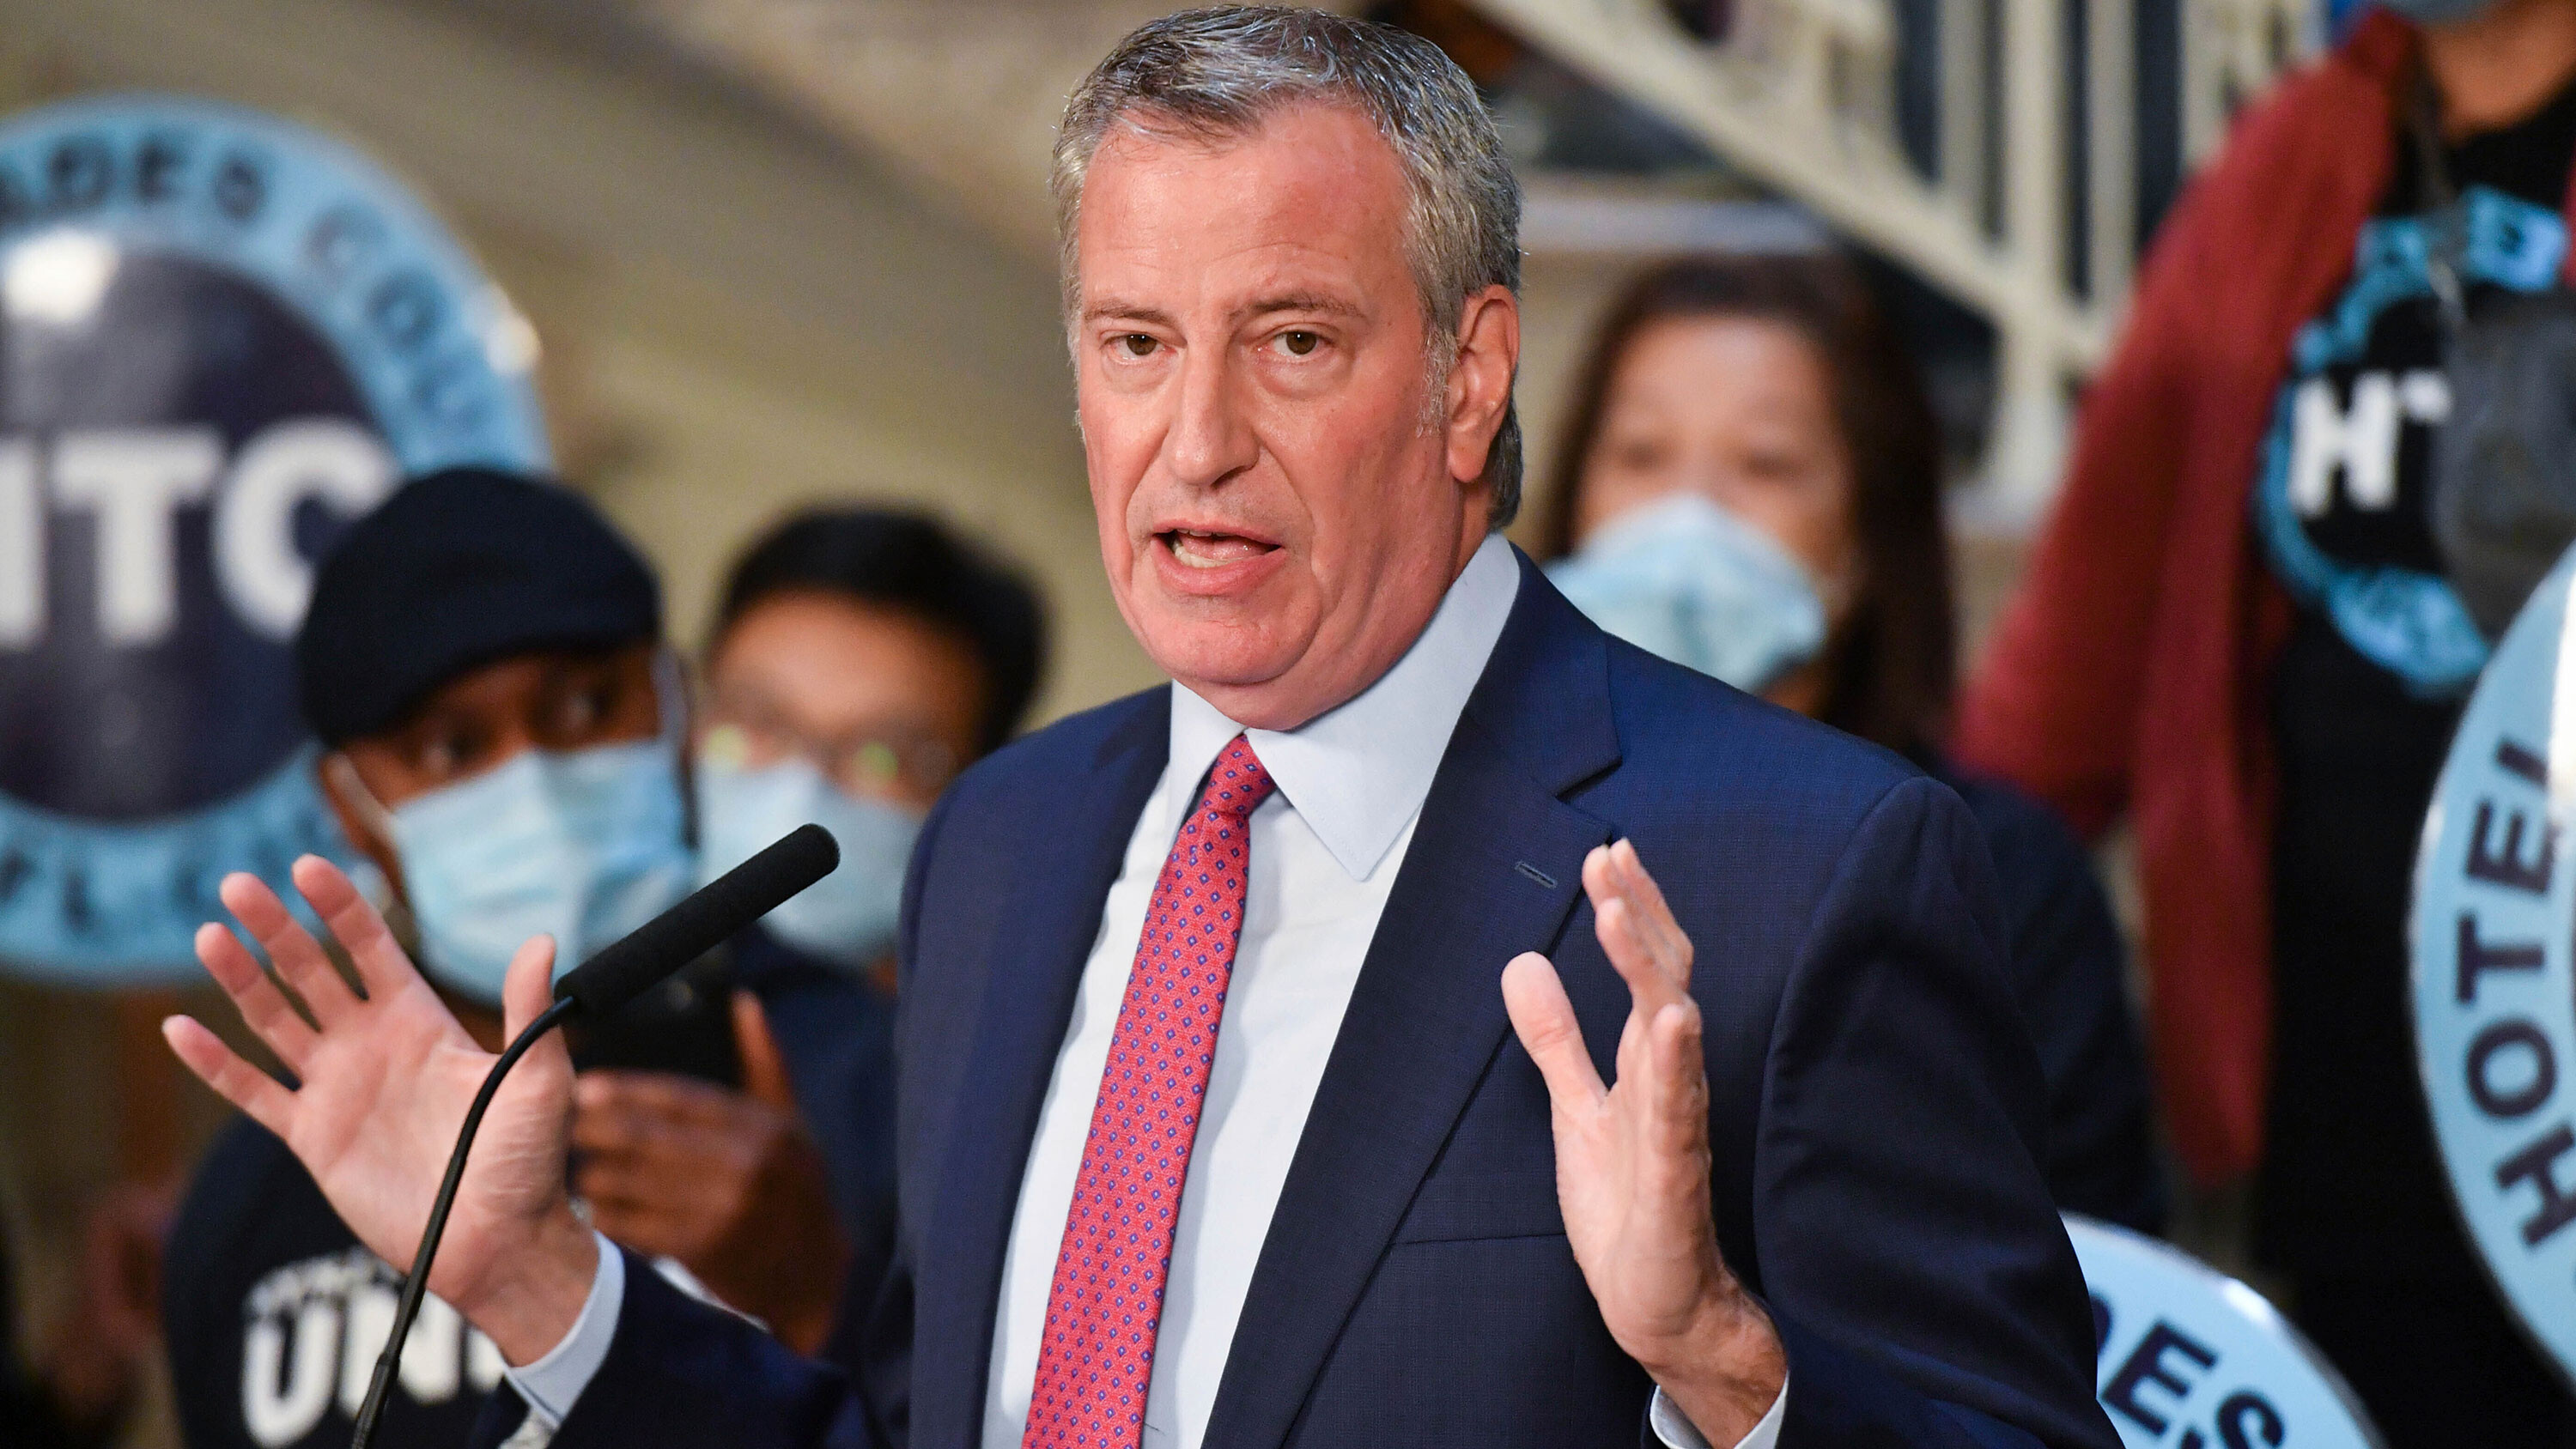 New York City vaccine mandate extends to all city workers and includes a new $500 bonus, mayor says